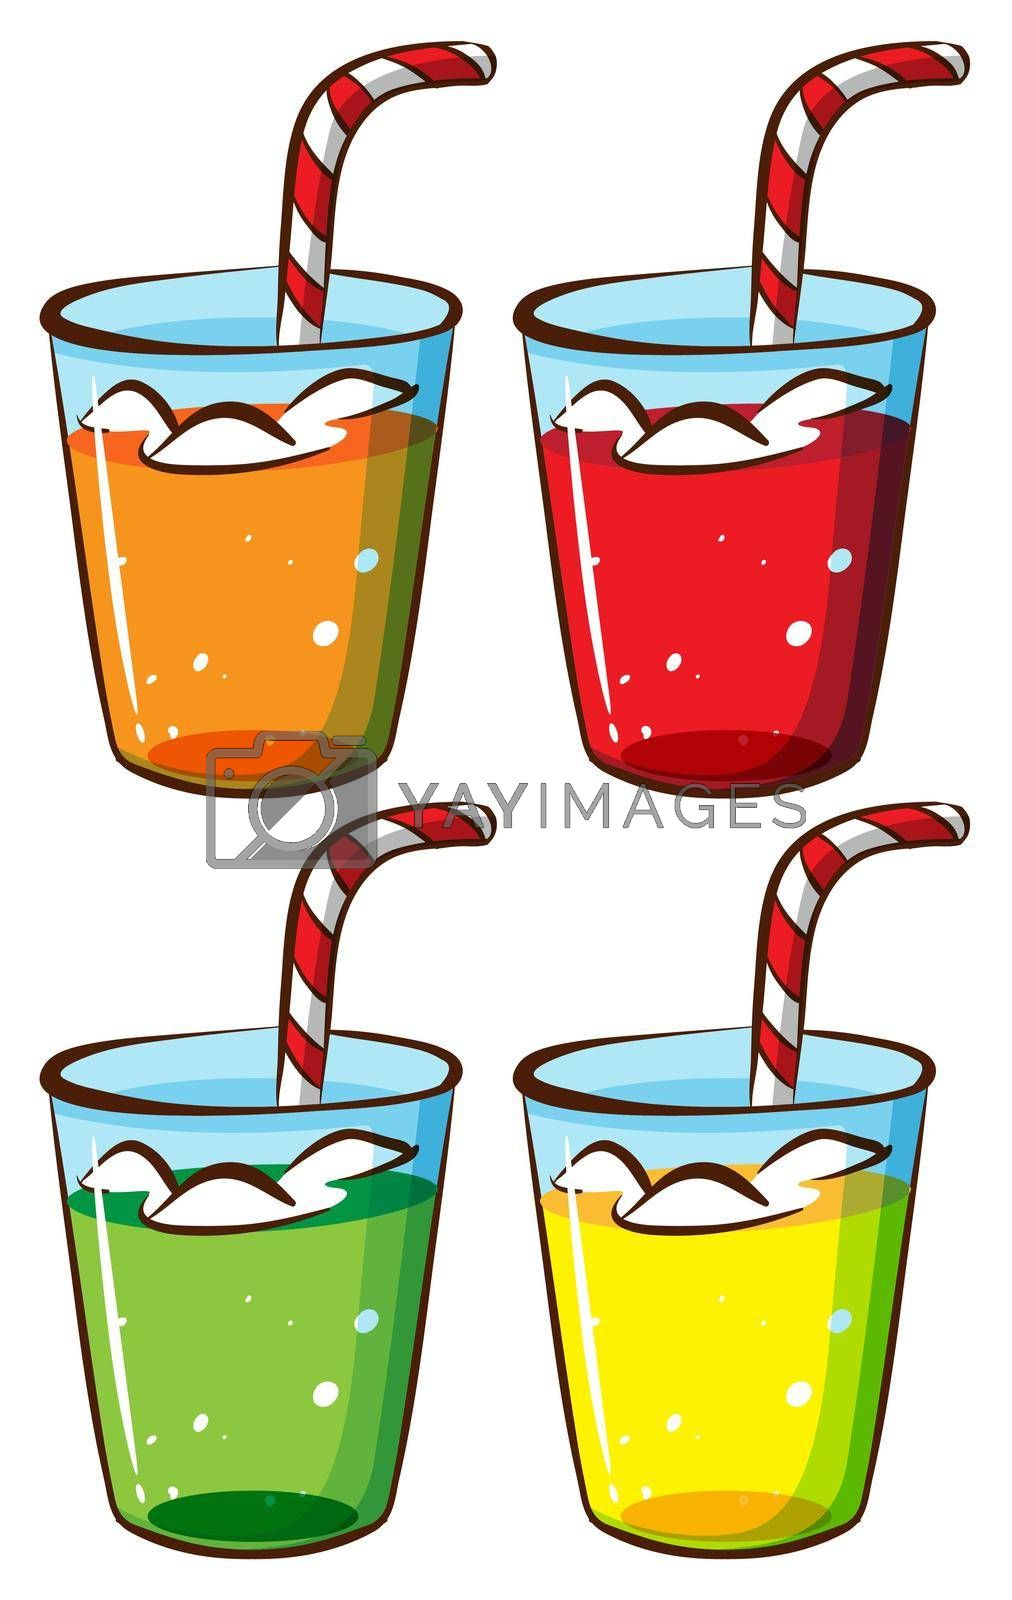 Royalty free image of Glasses with juice by iimages